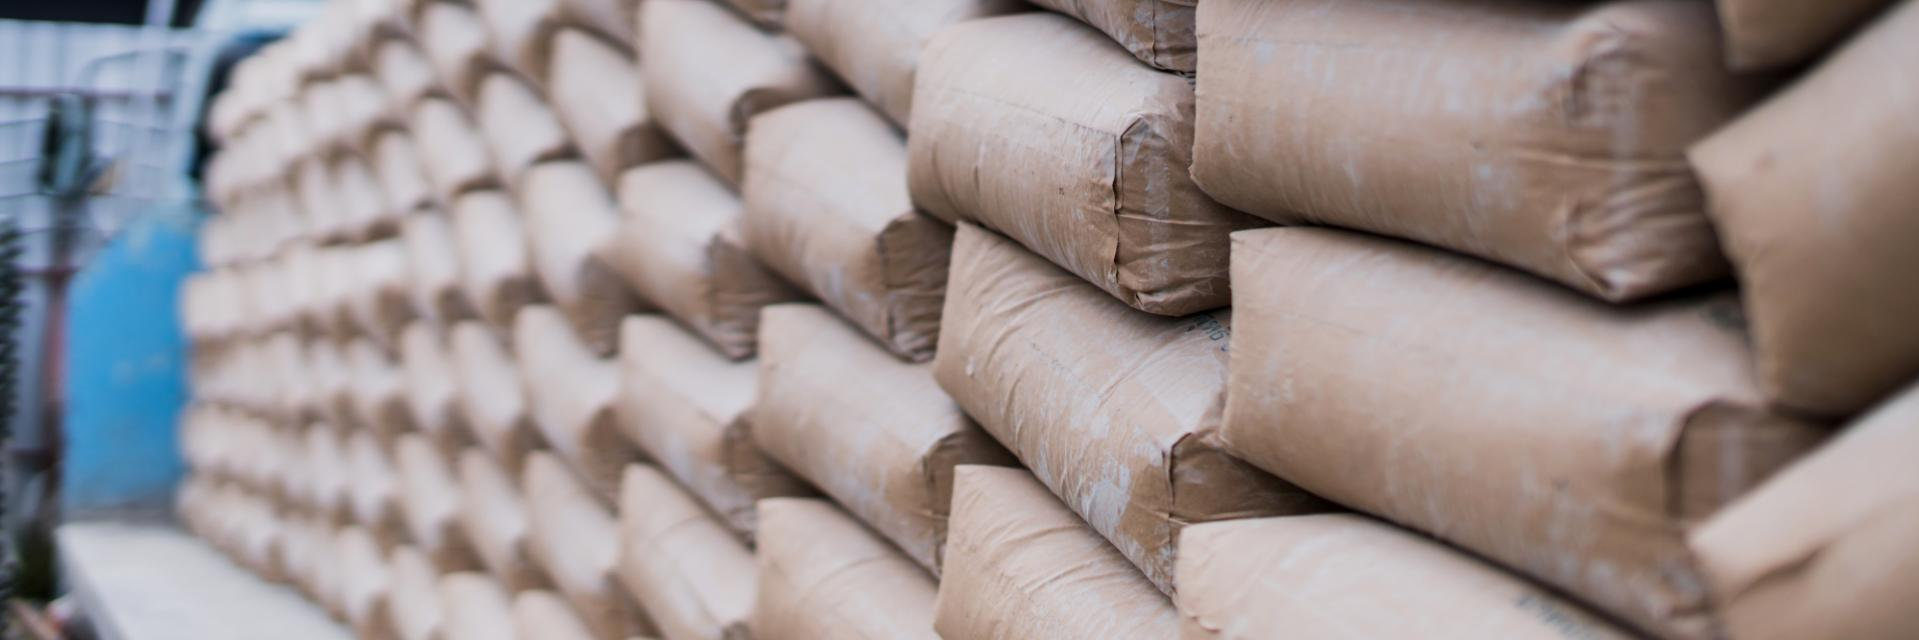 AfCFTA gives Dangote incentive to boost cement production in Africa - company